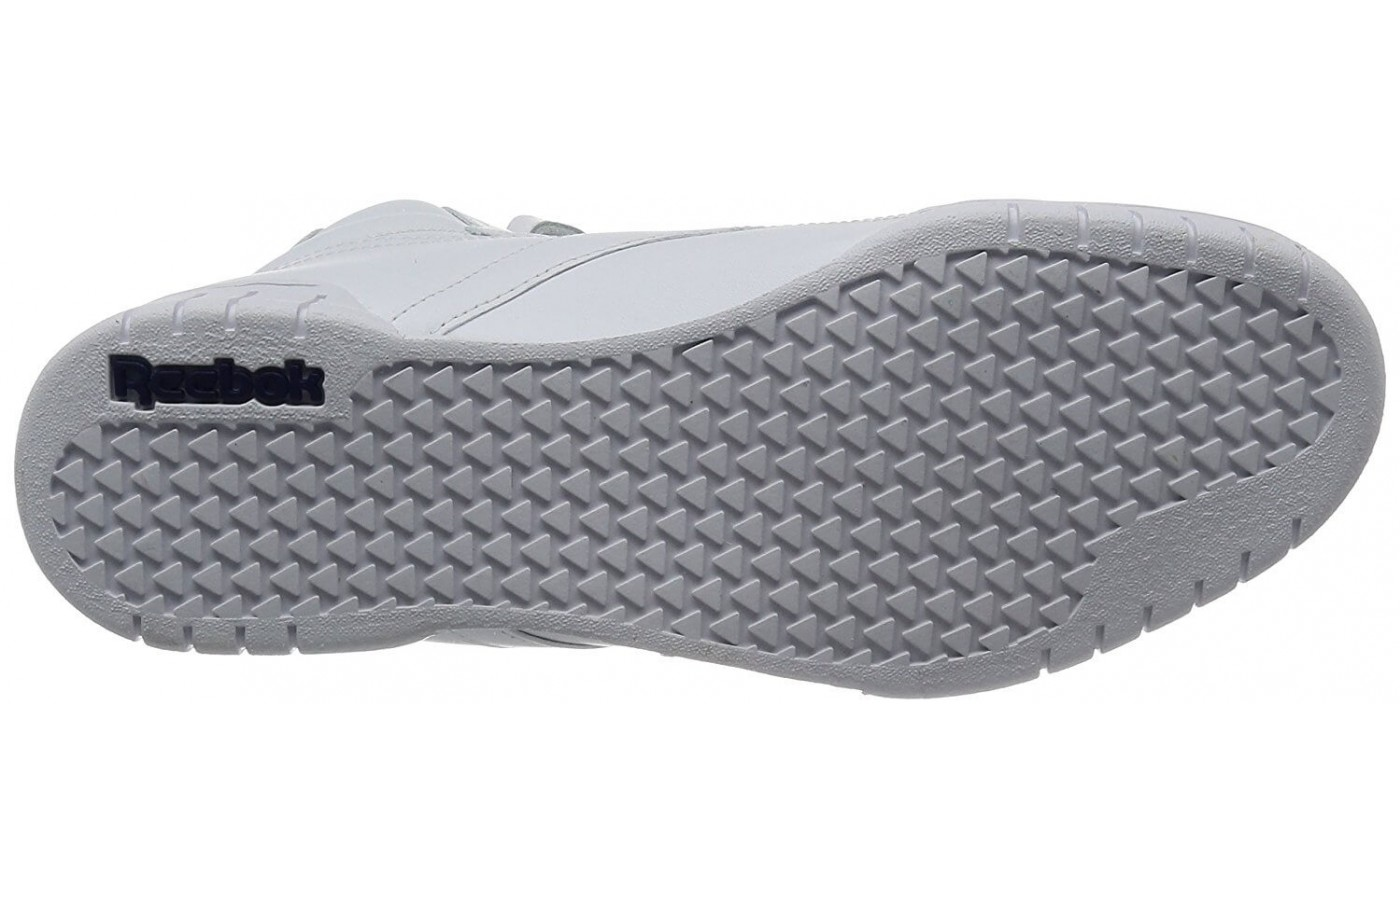 The Reebok Ex-O-Fit Hi has a rubber outsole